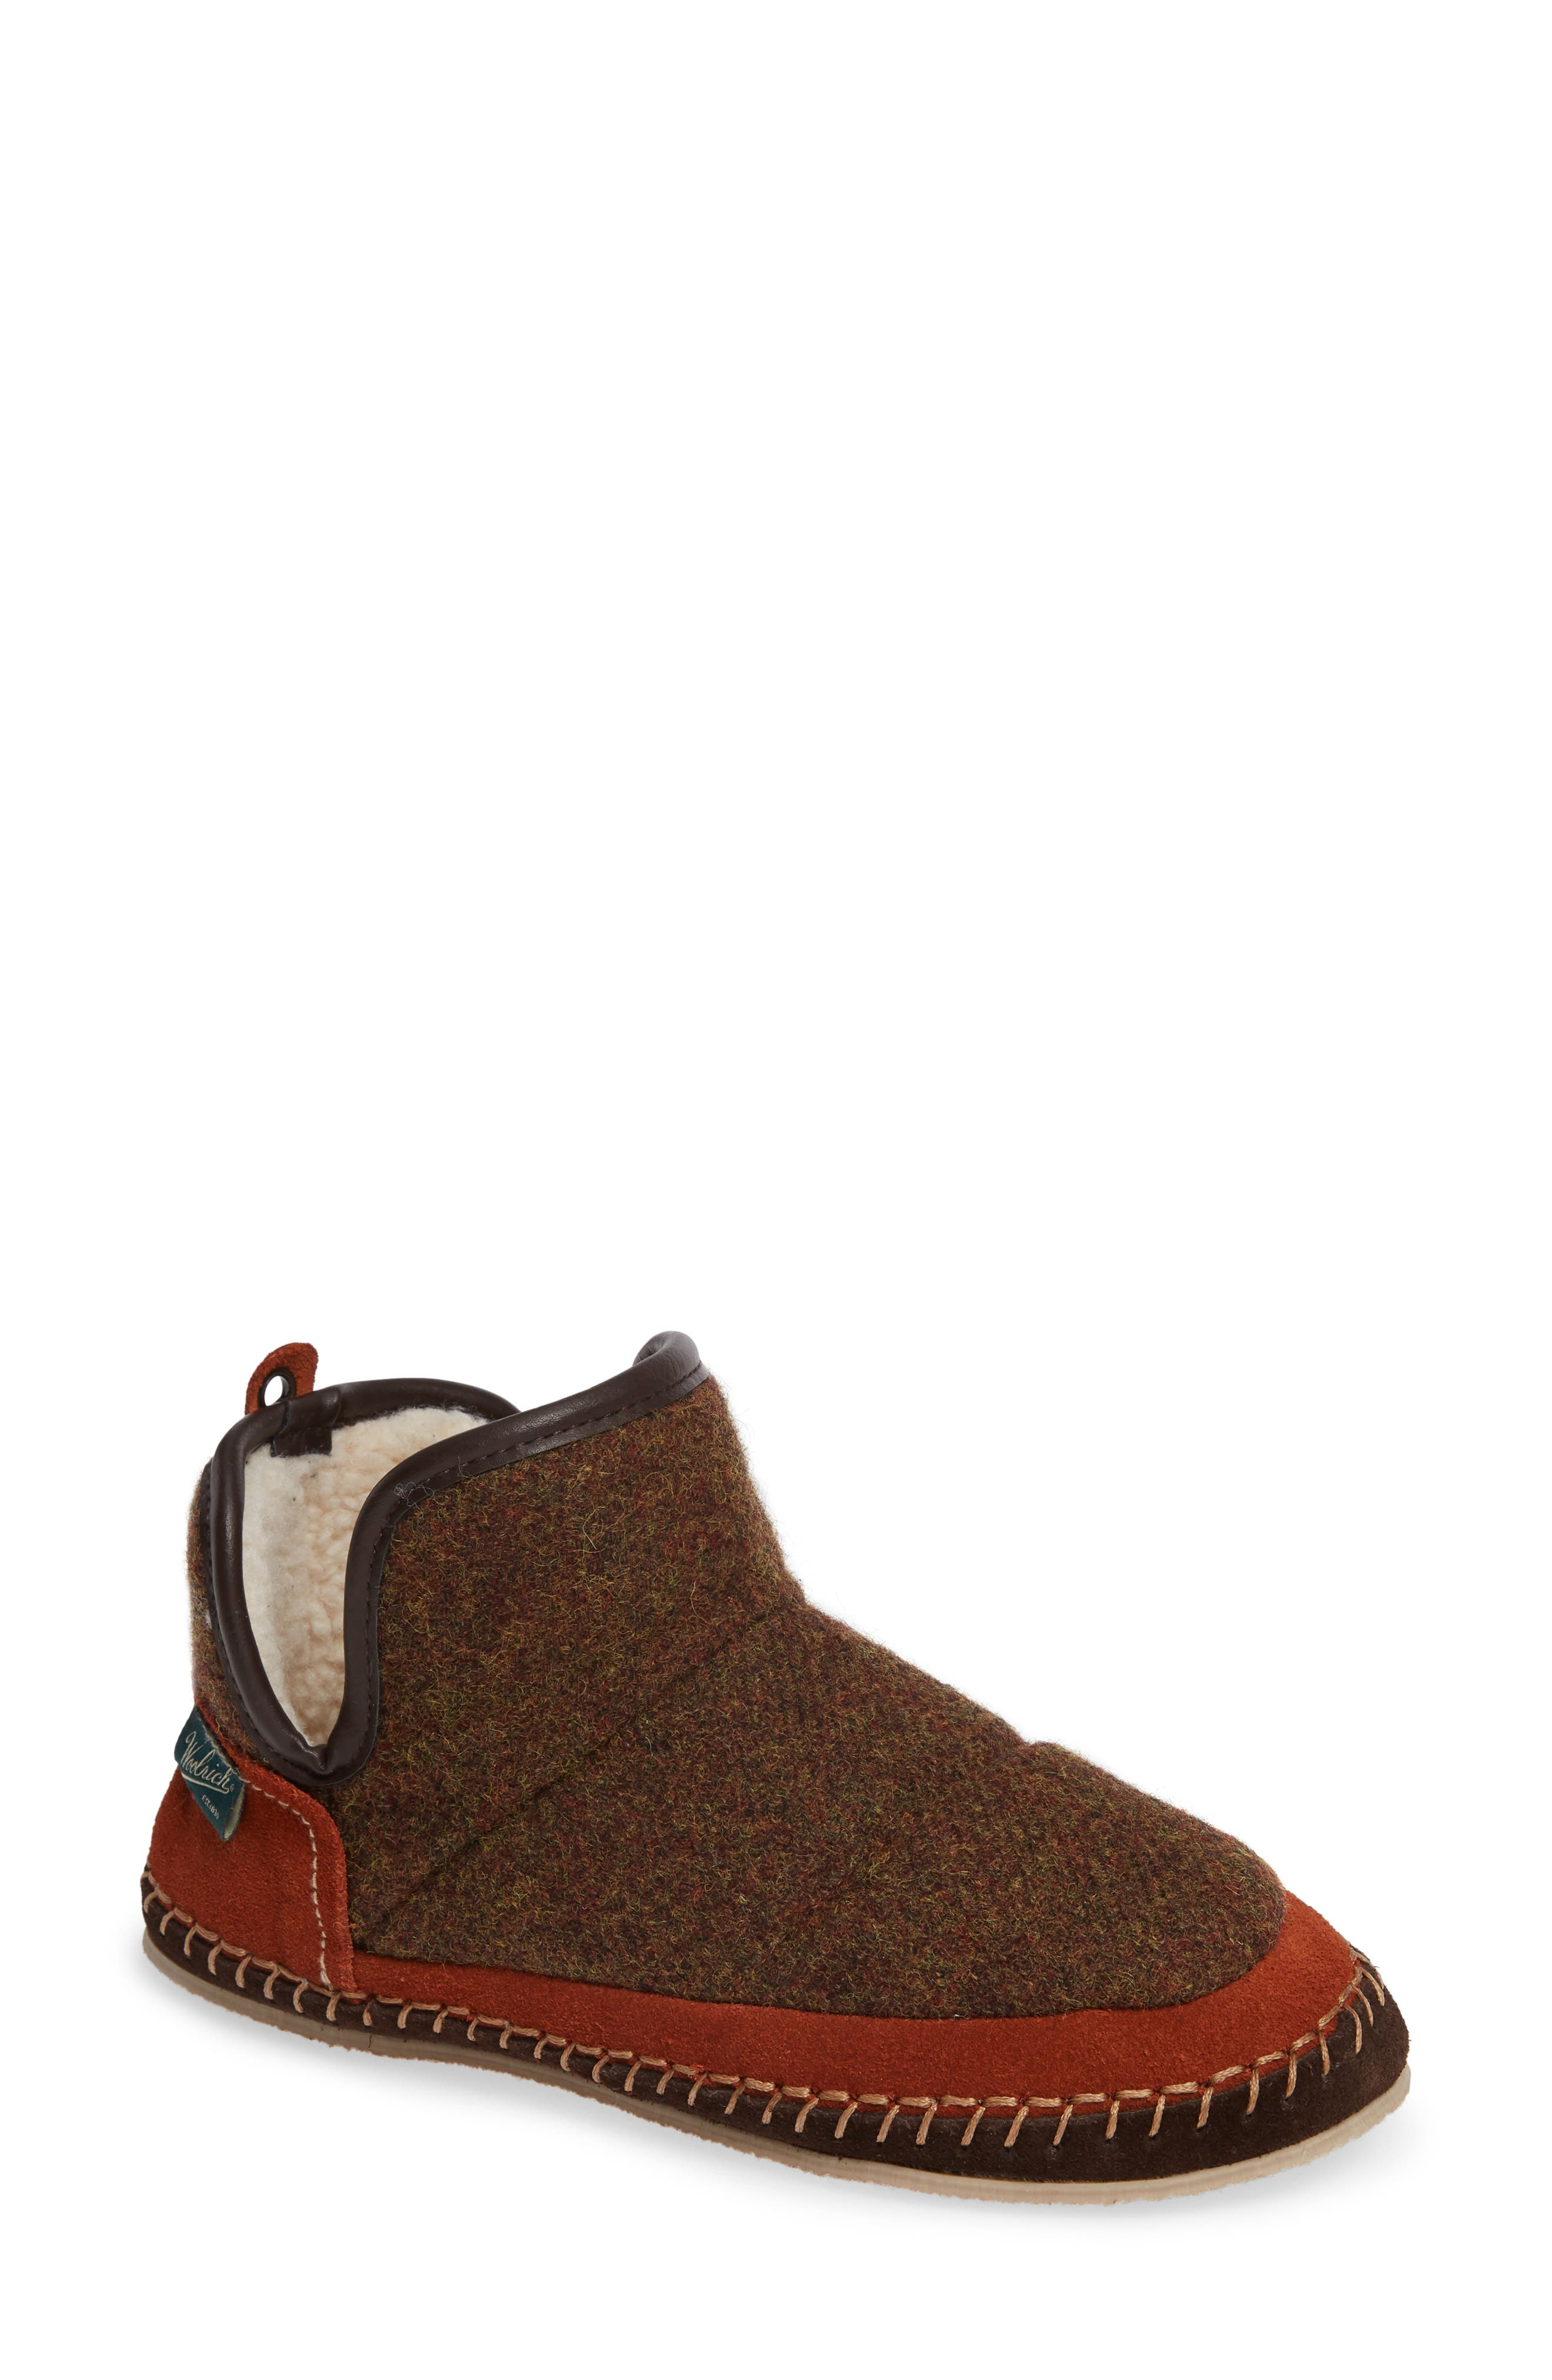 WOOLRICH,                             Glamper Slipper Bootie,                             Main thumbnail 1, color,                             SPICED CIDER WOOL